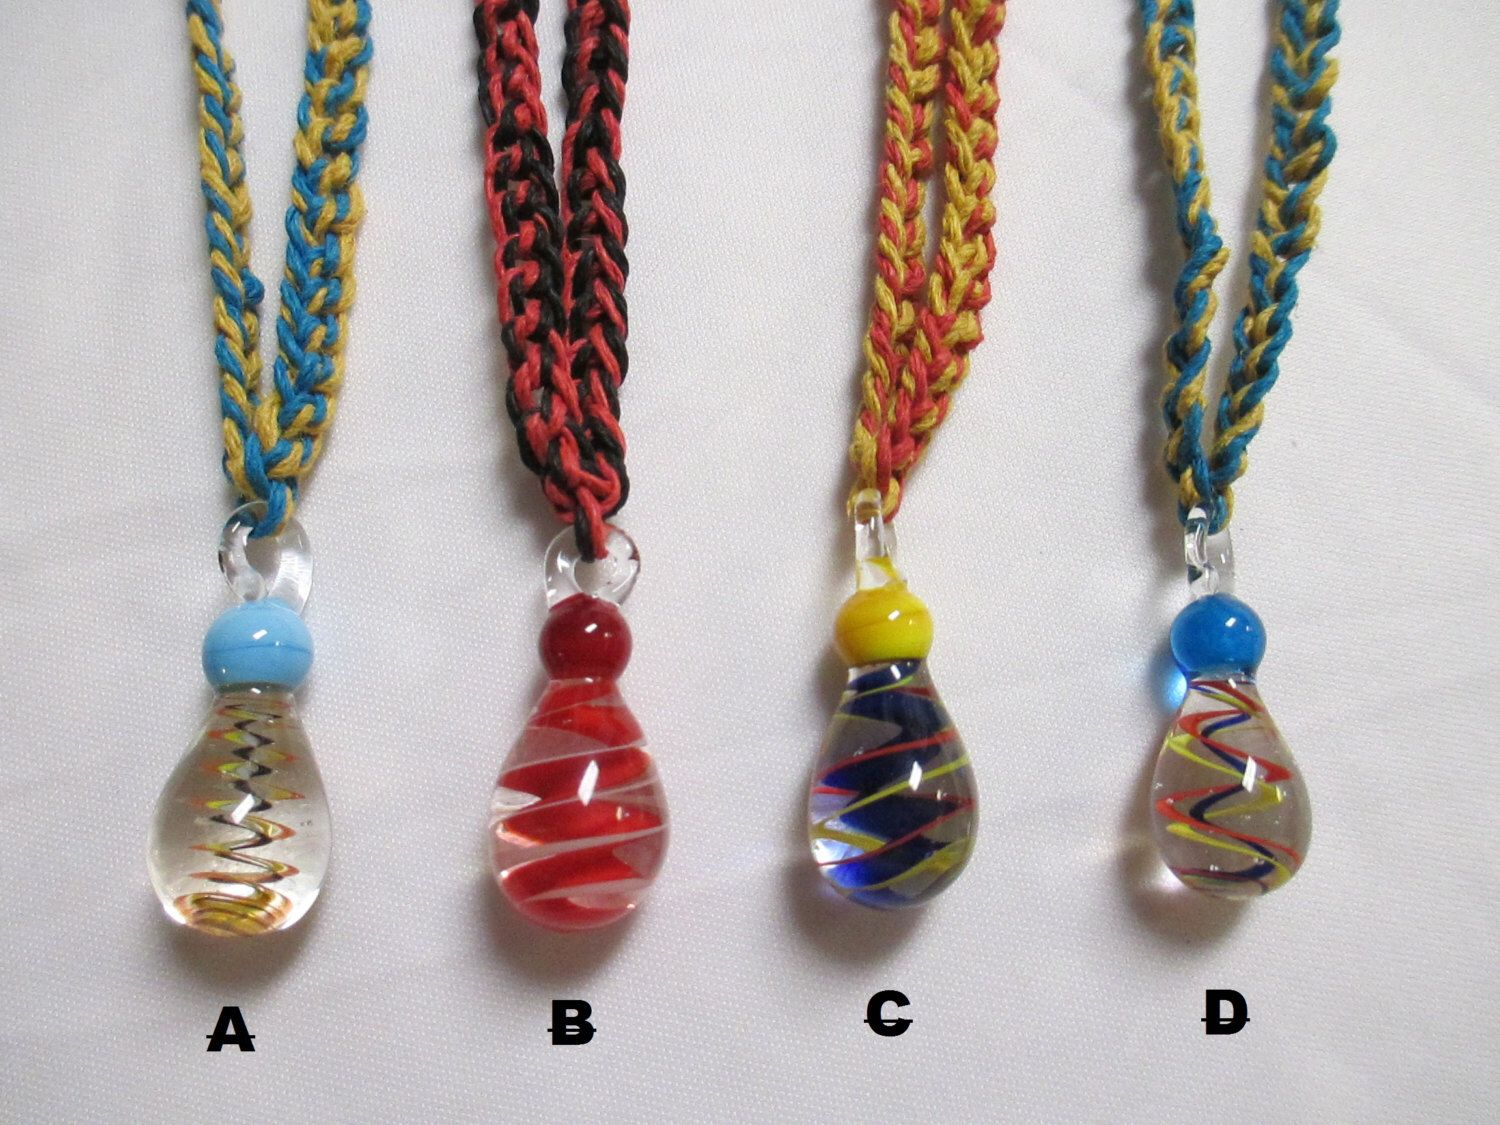 Jumbo swirl glass pendant hemp necklace 1 you choose color by jumbo swirl glass pendant hemp necklace 1 you choose color mozeypictures Images